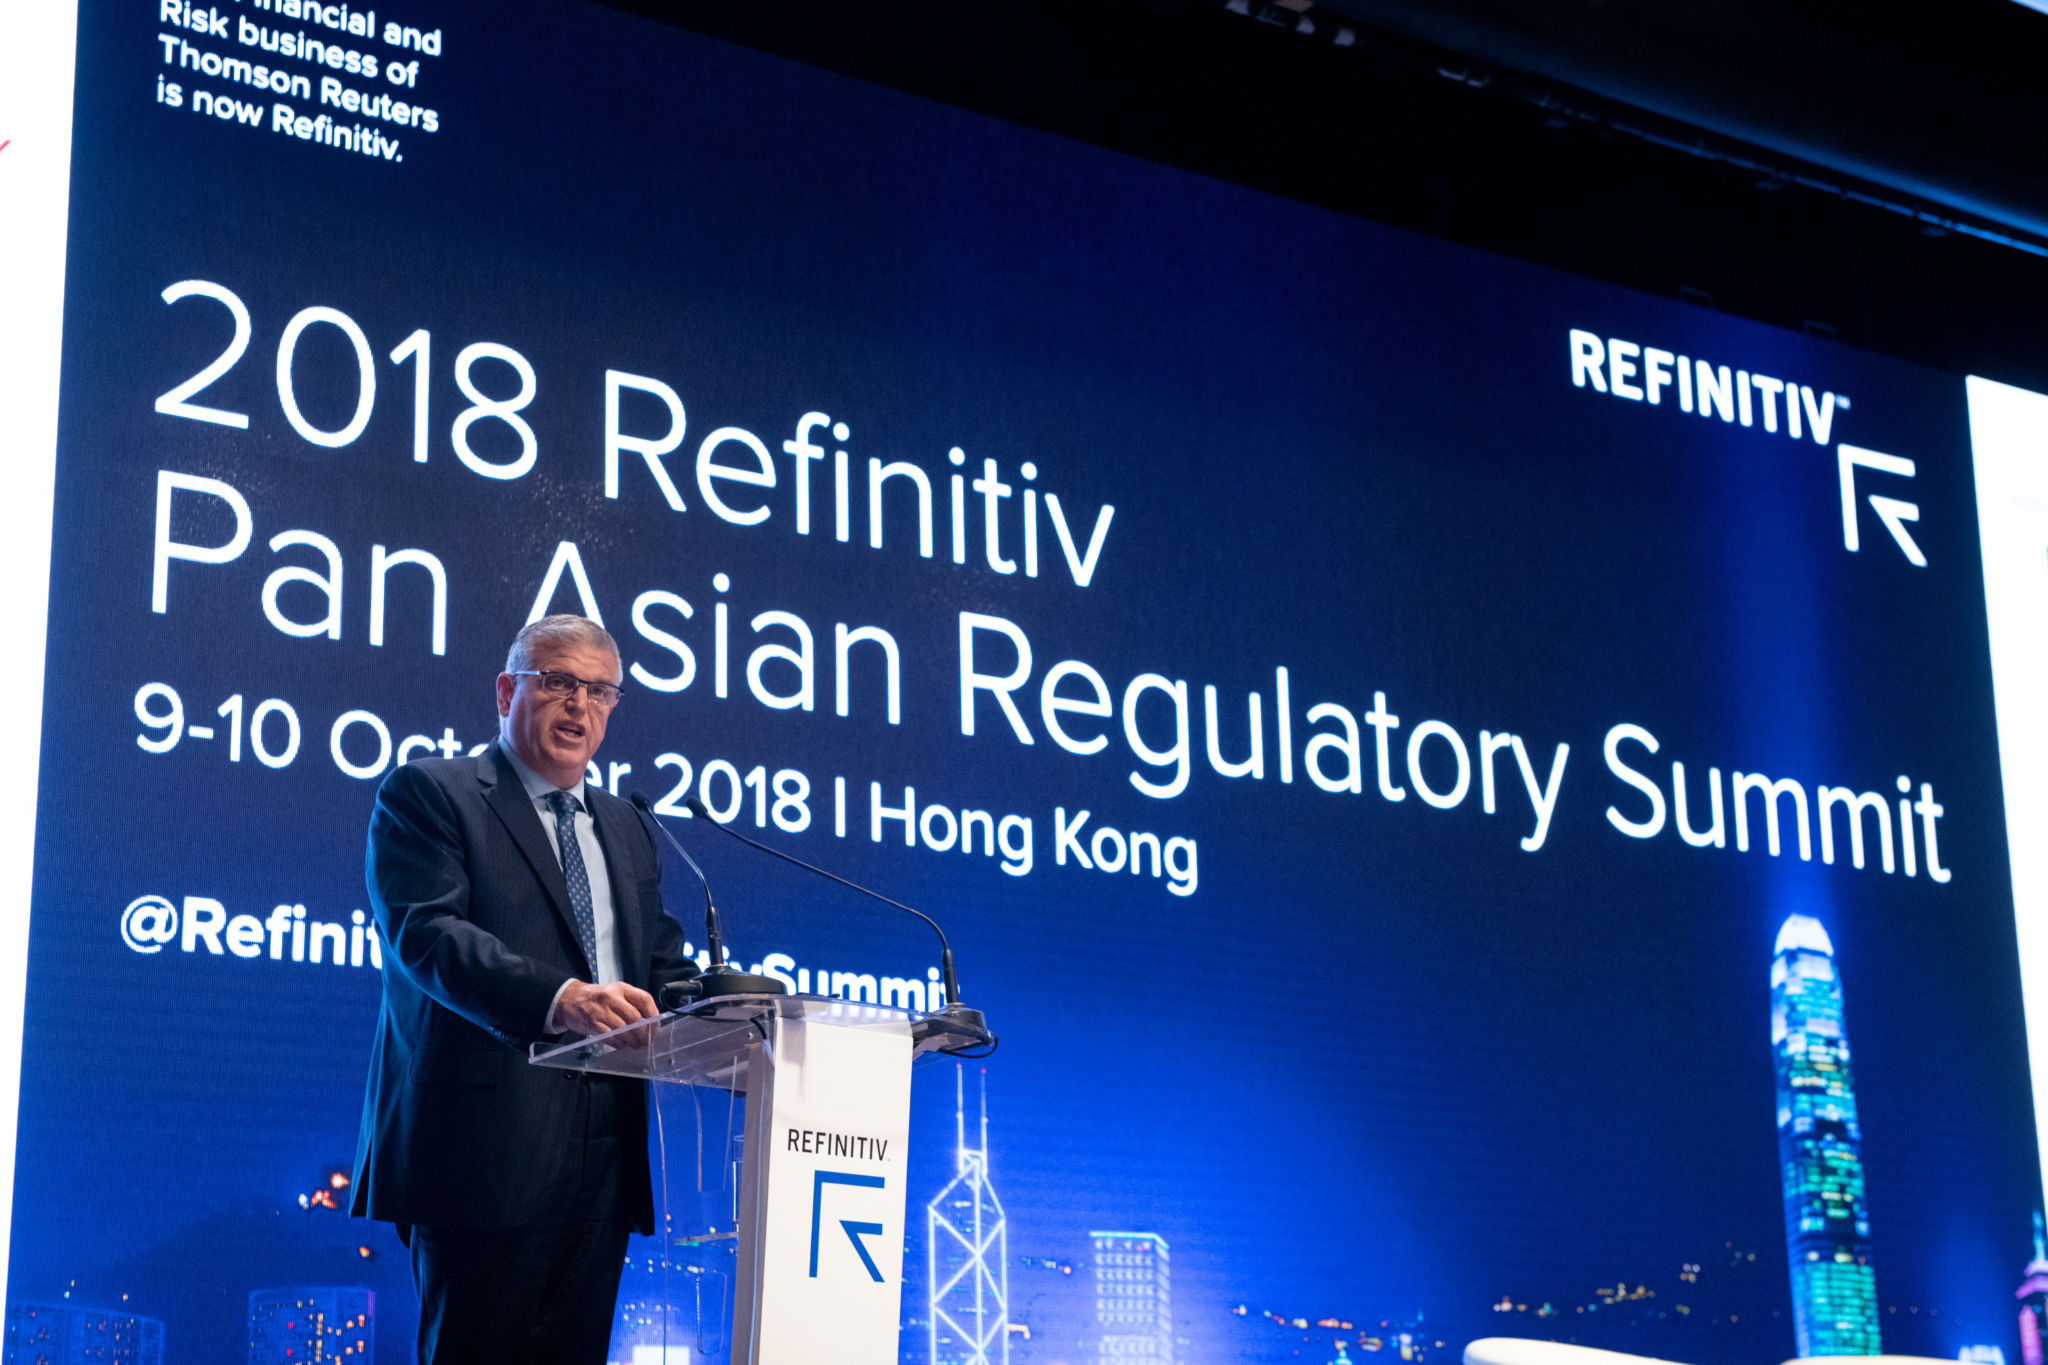 Keynote presentation by Thomas Atkinson, Executive Director of Enforcement at the SFC, during the 2018 Refinitiv Pan Asian Regulatory Summit